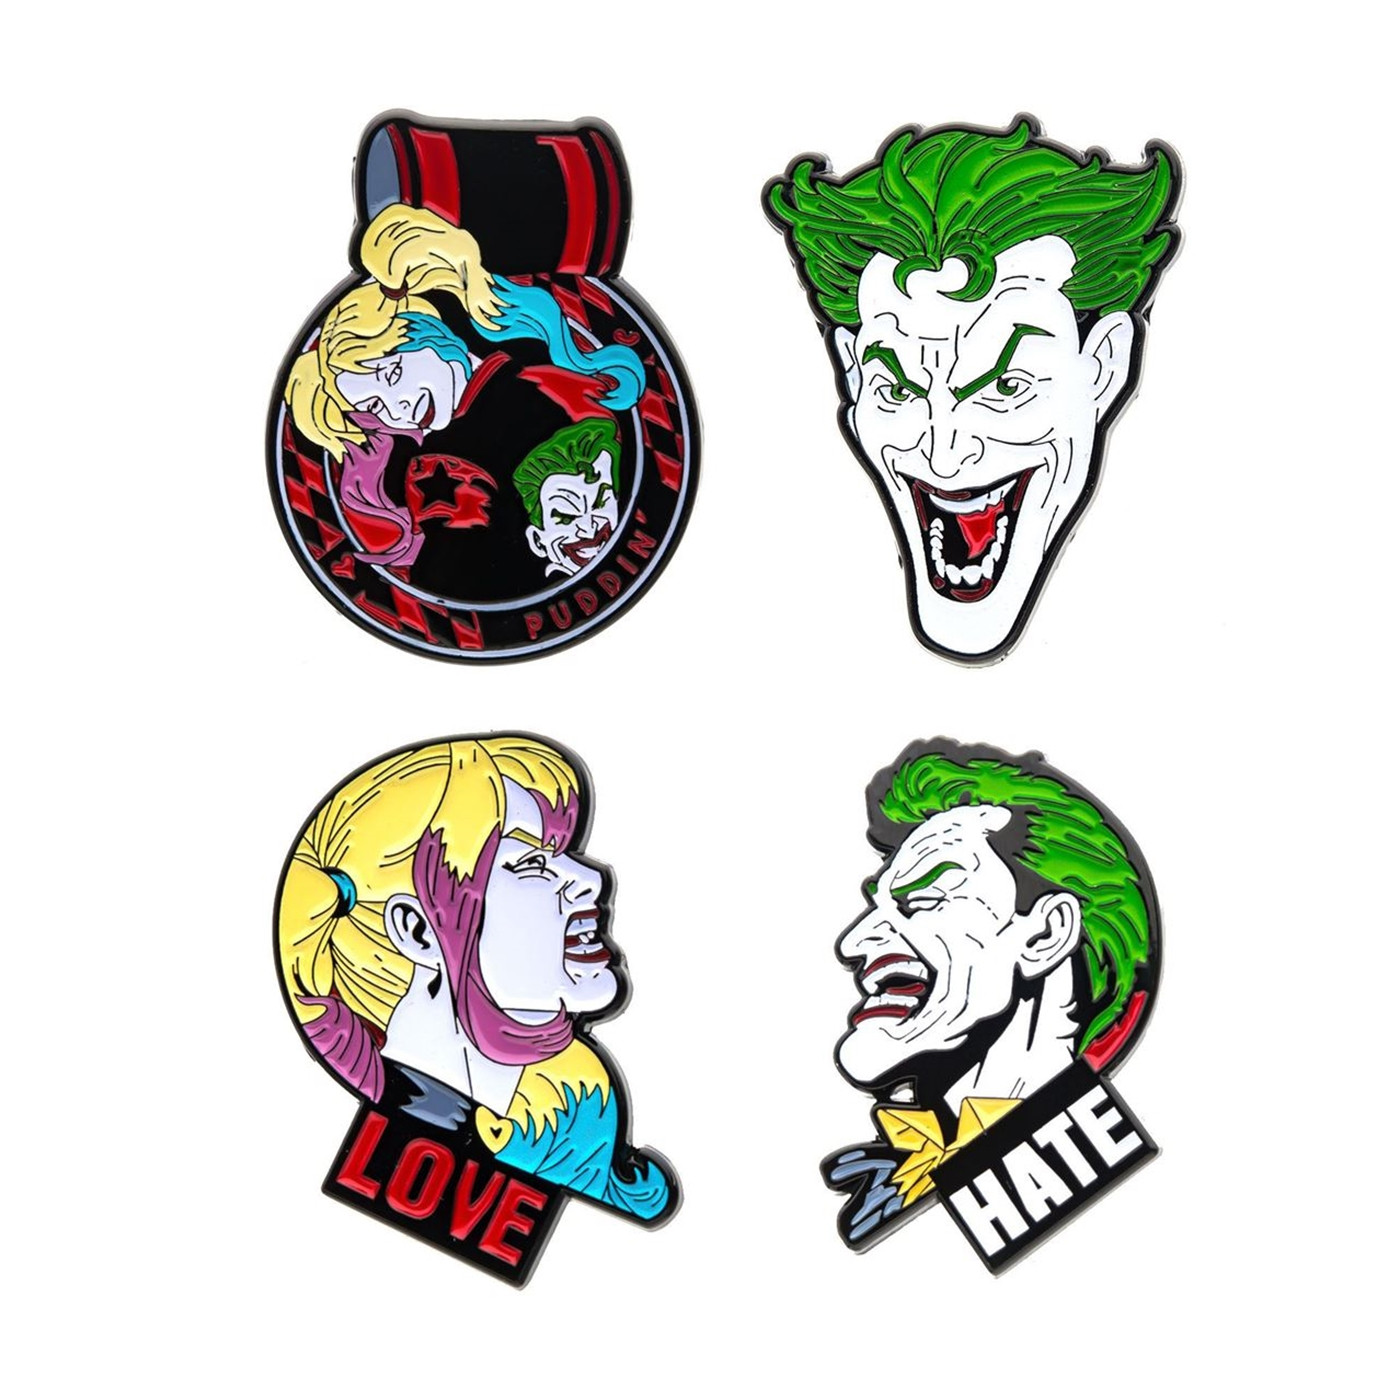 Joker and Harley Quinn Face 4-Piece Enamel Pin Set